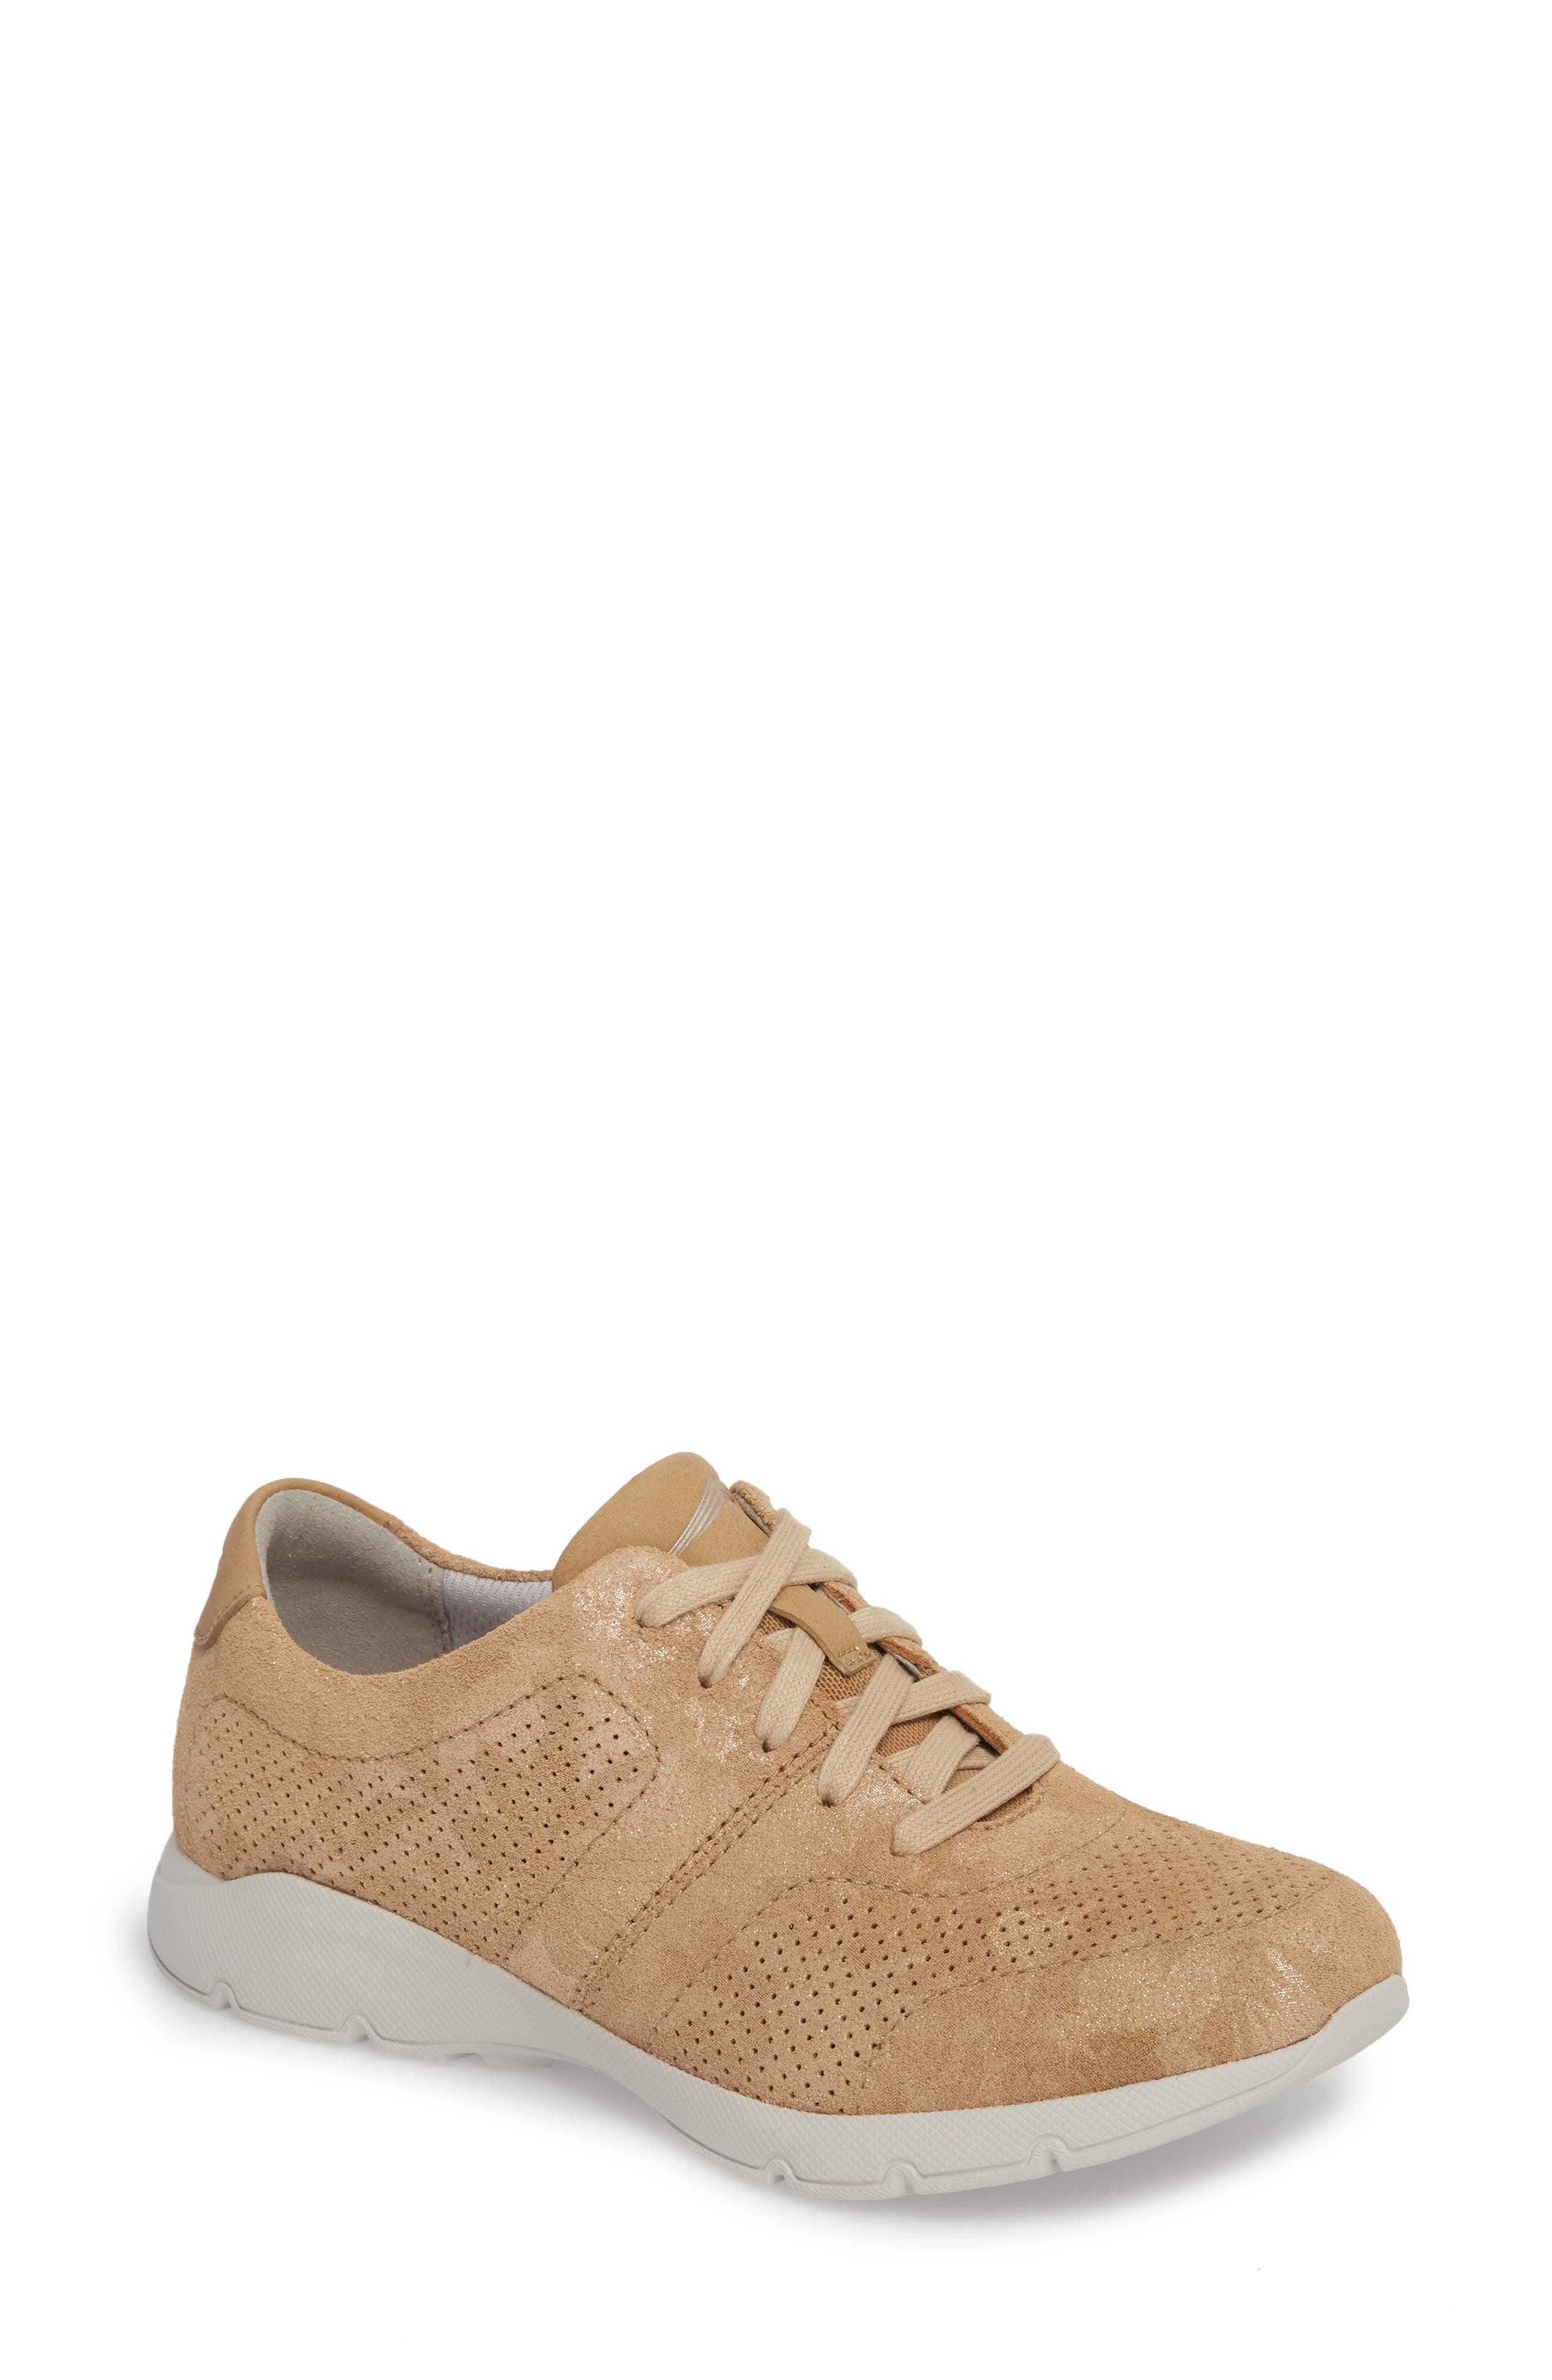 Alissa Sneaker,                         Main,                         color, GOLD PRINT LEATHER